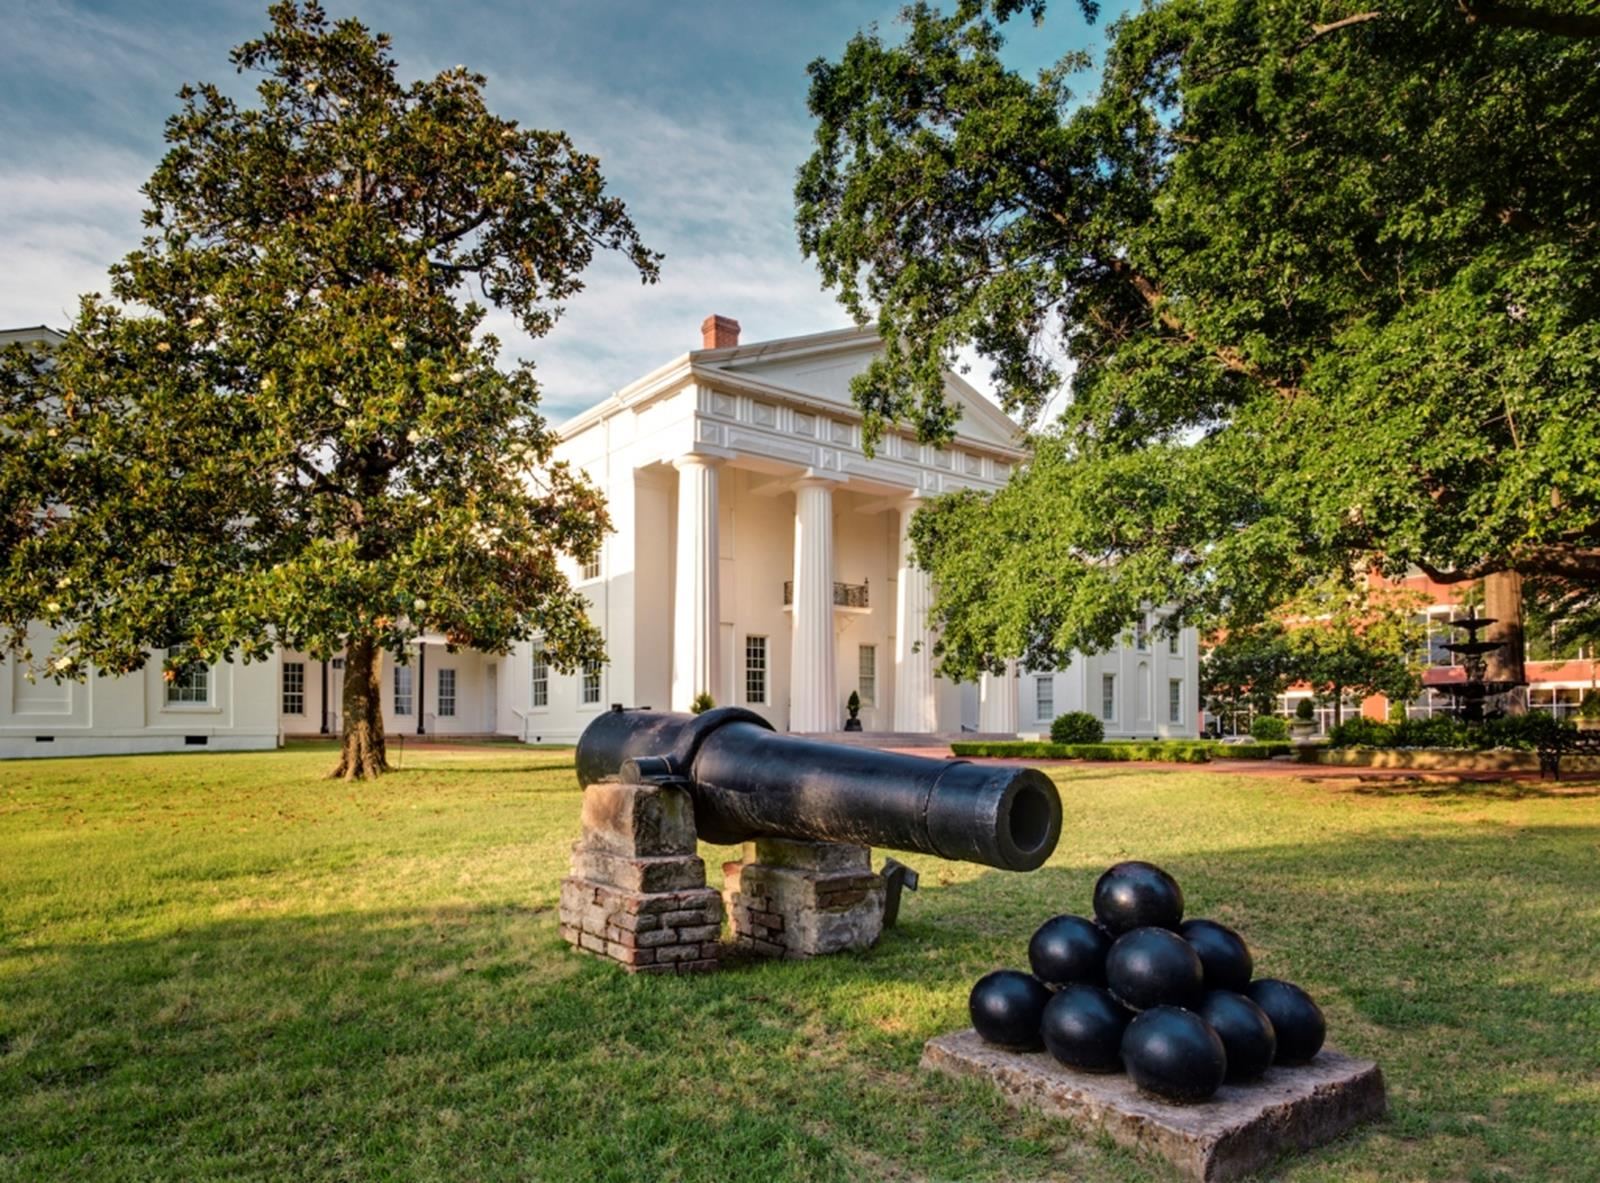 Old Statehouse Museum. Credit: Old Statehouse Museum.